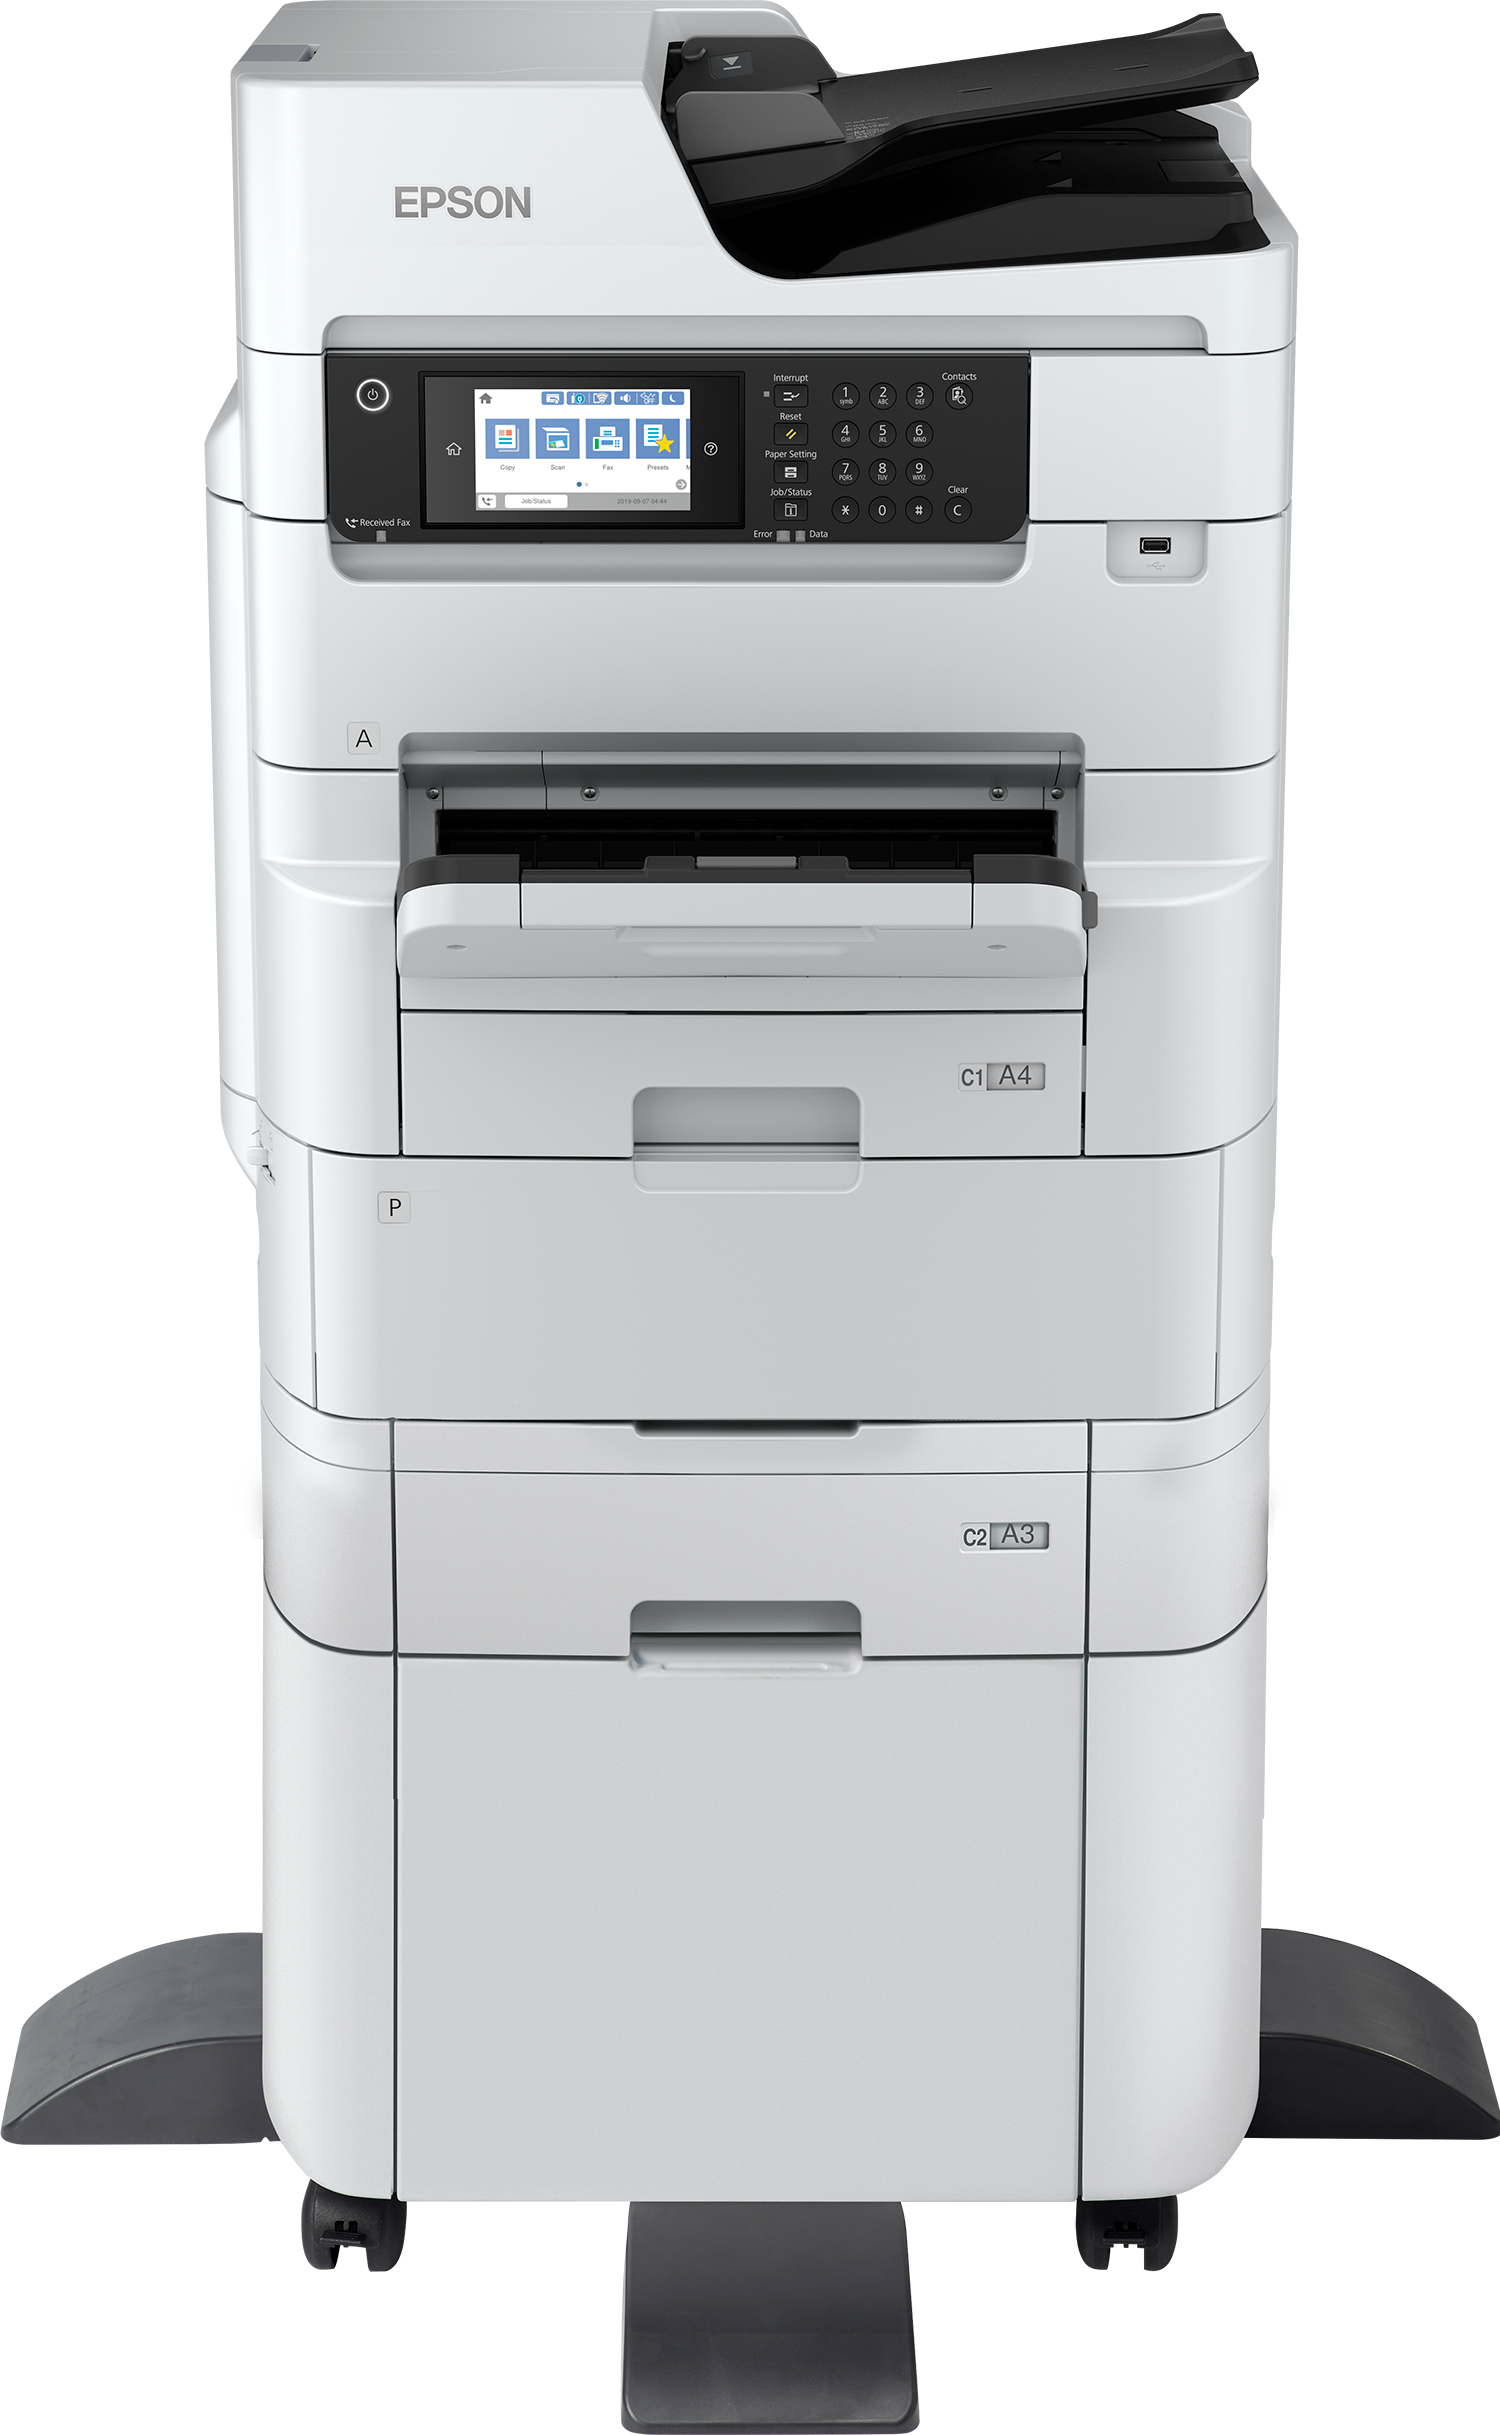 EPSON WorkForce Pro WF-C879RDTWFC